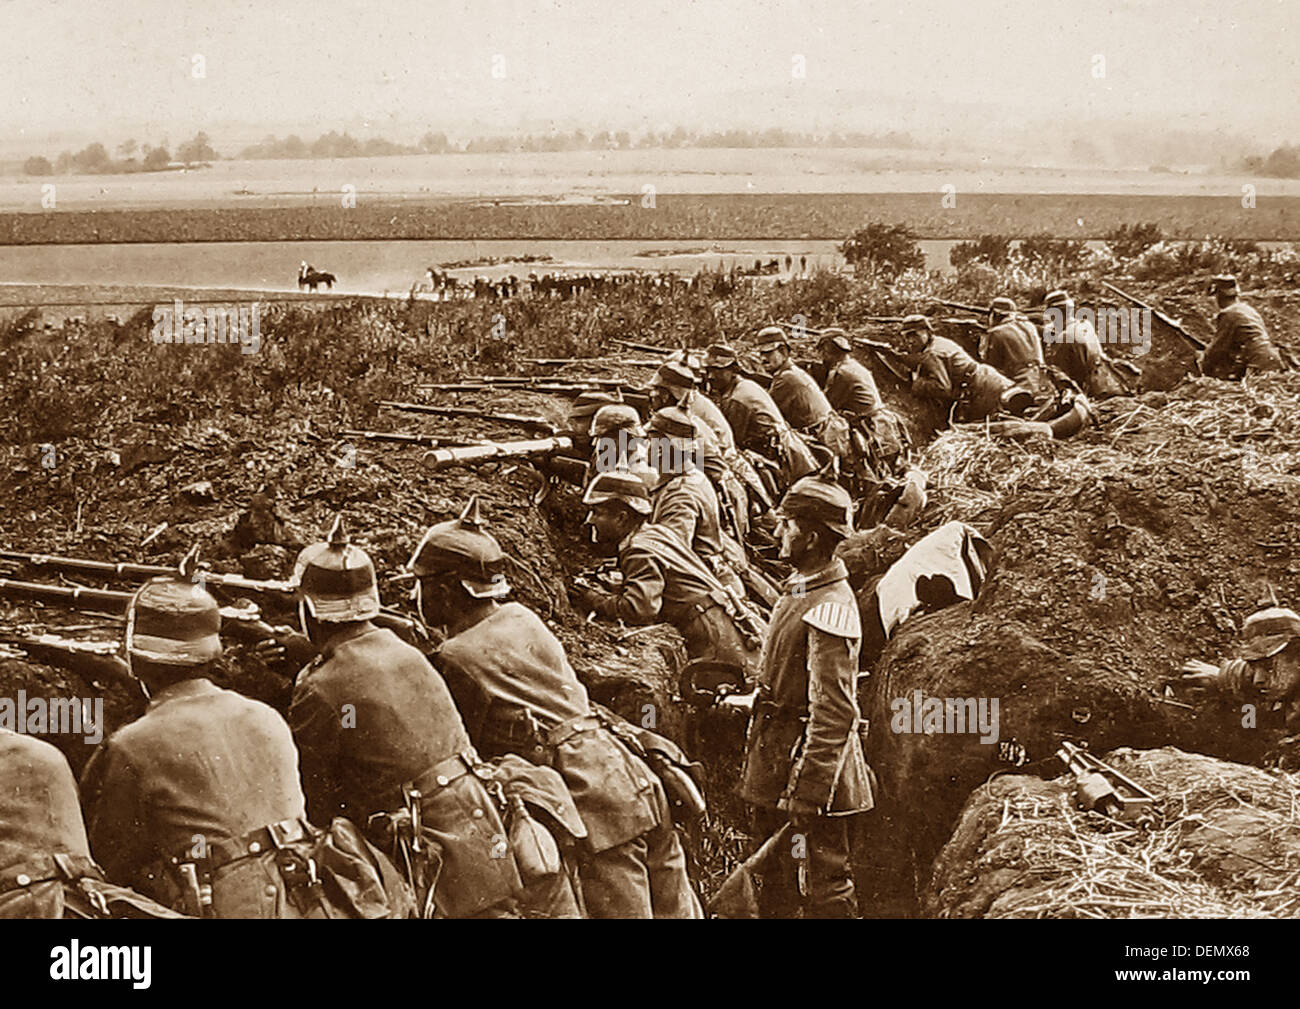 German Infantry in a trench during WW1 - Stock Image